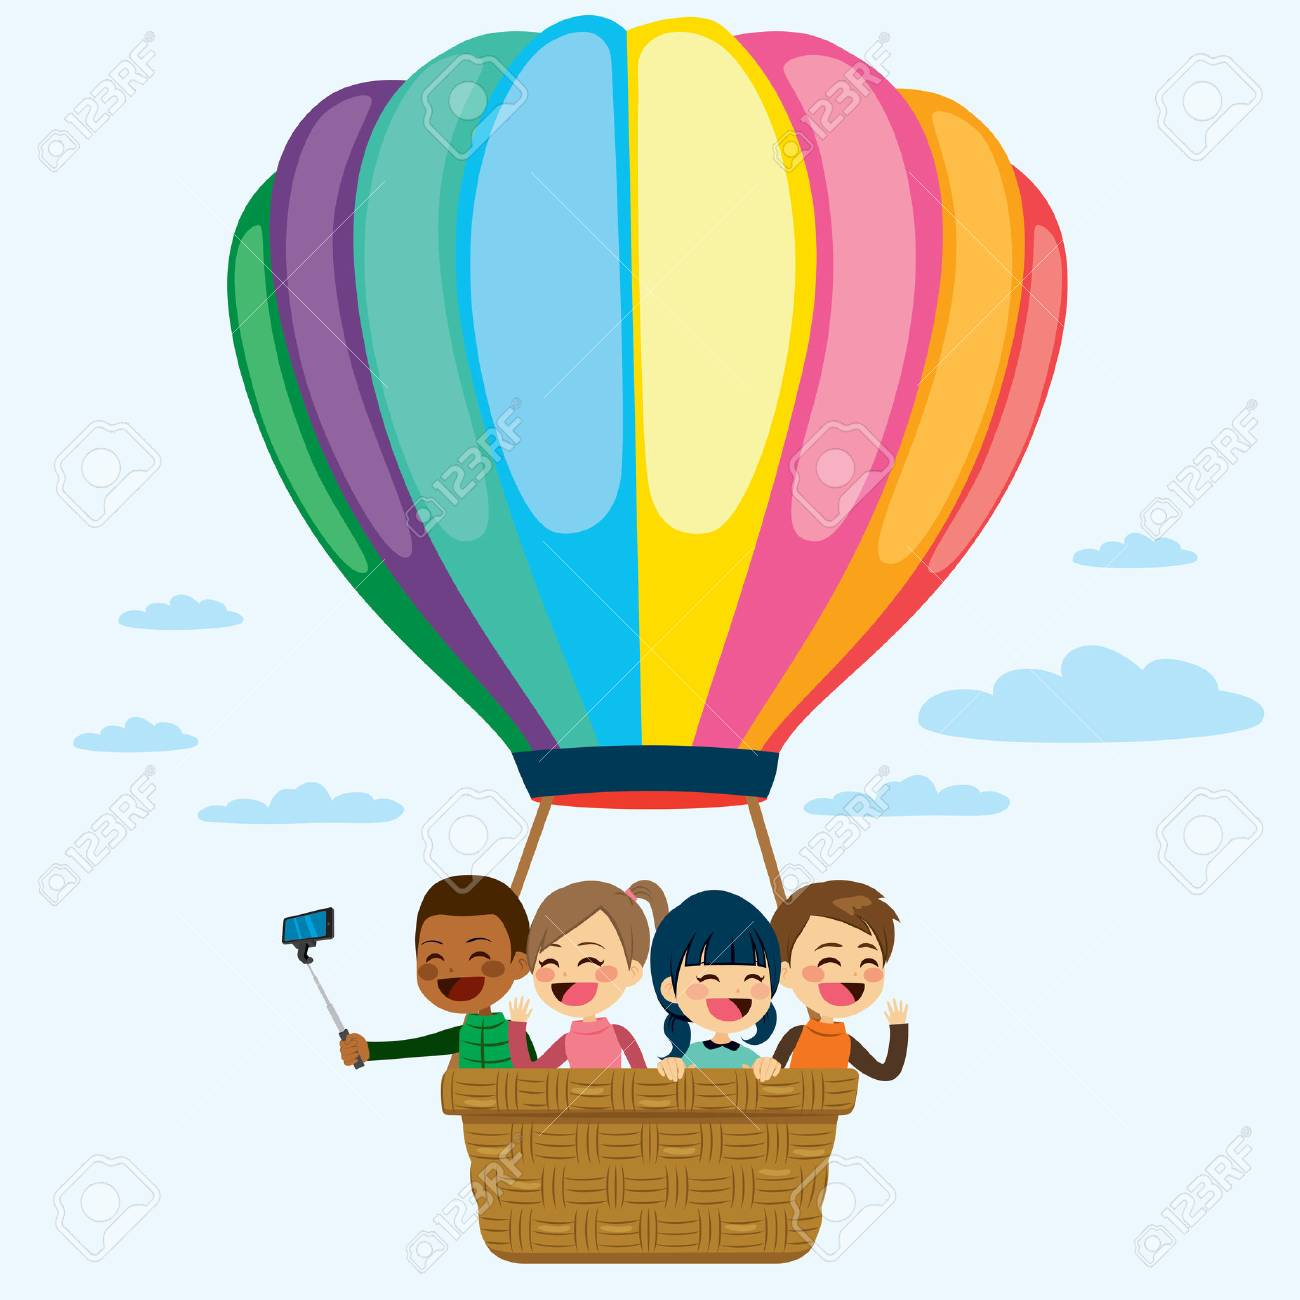 Happy little children flying on colorful hot air balloon.